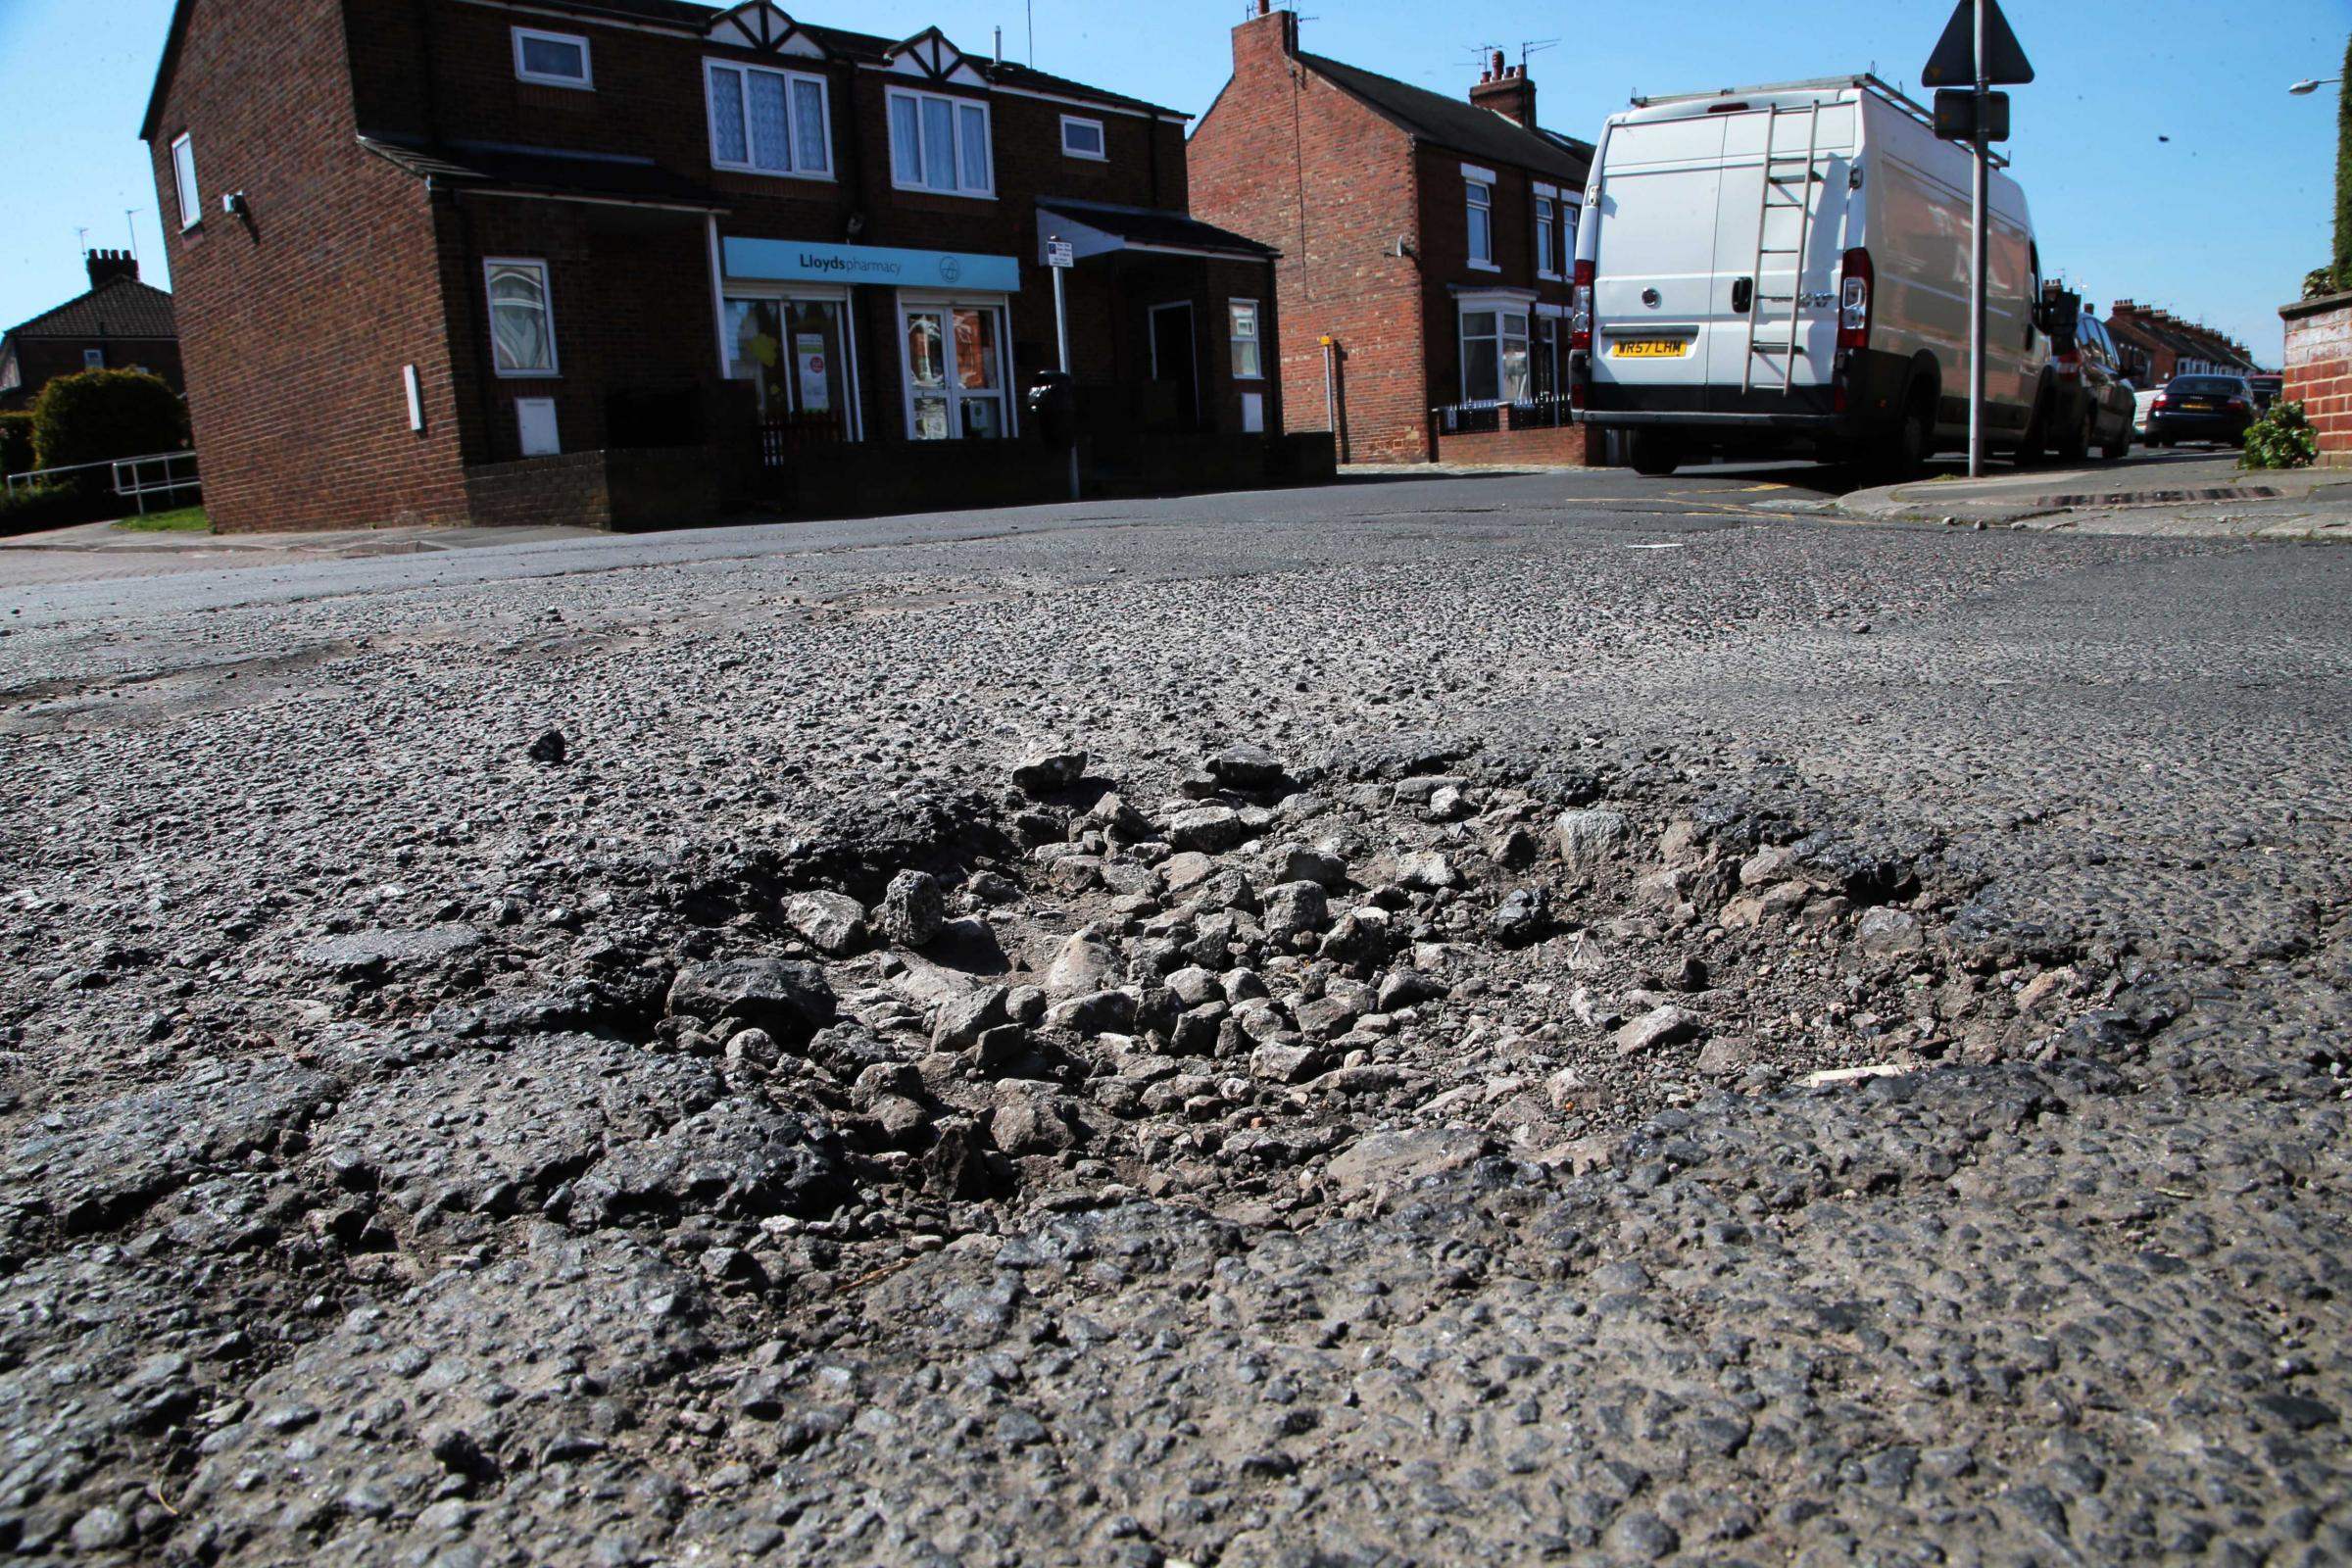 £10m will be spent on patching up potholes in the region